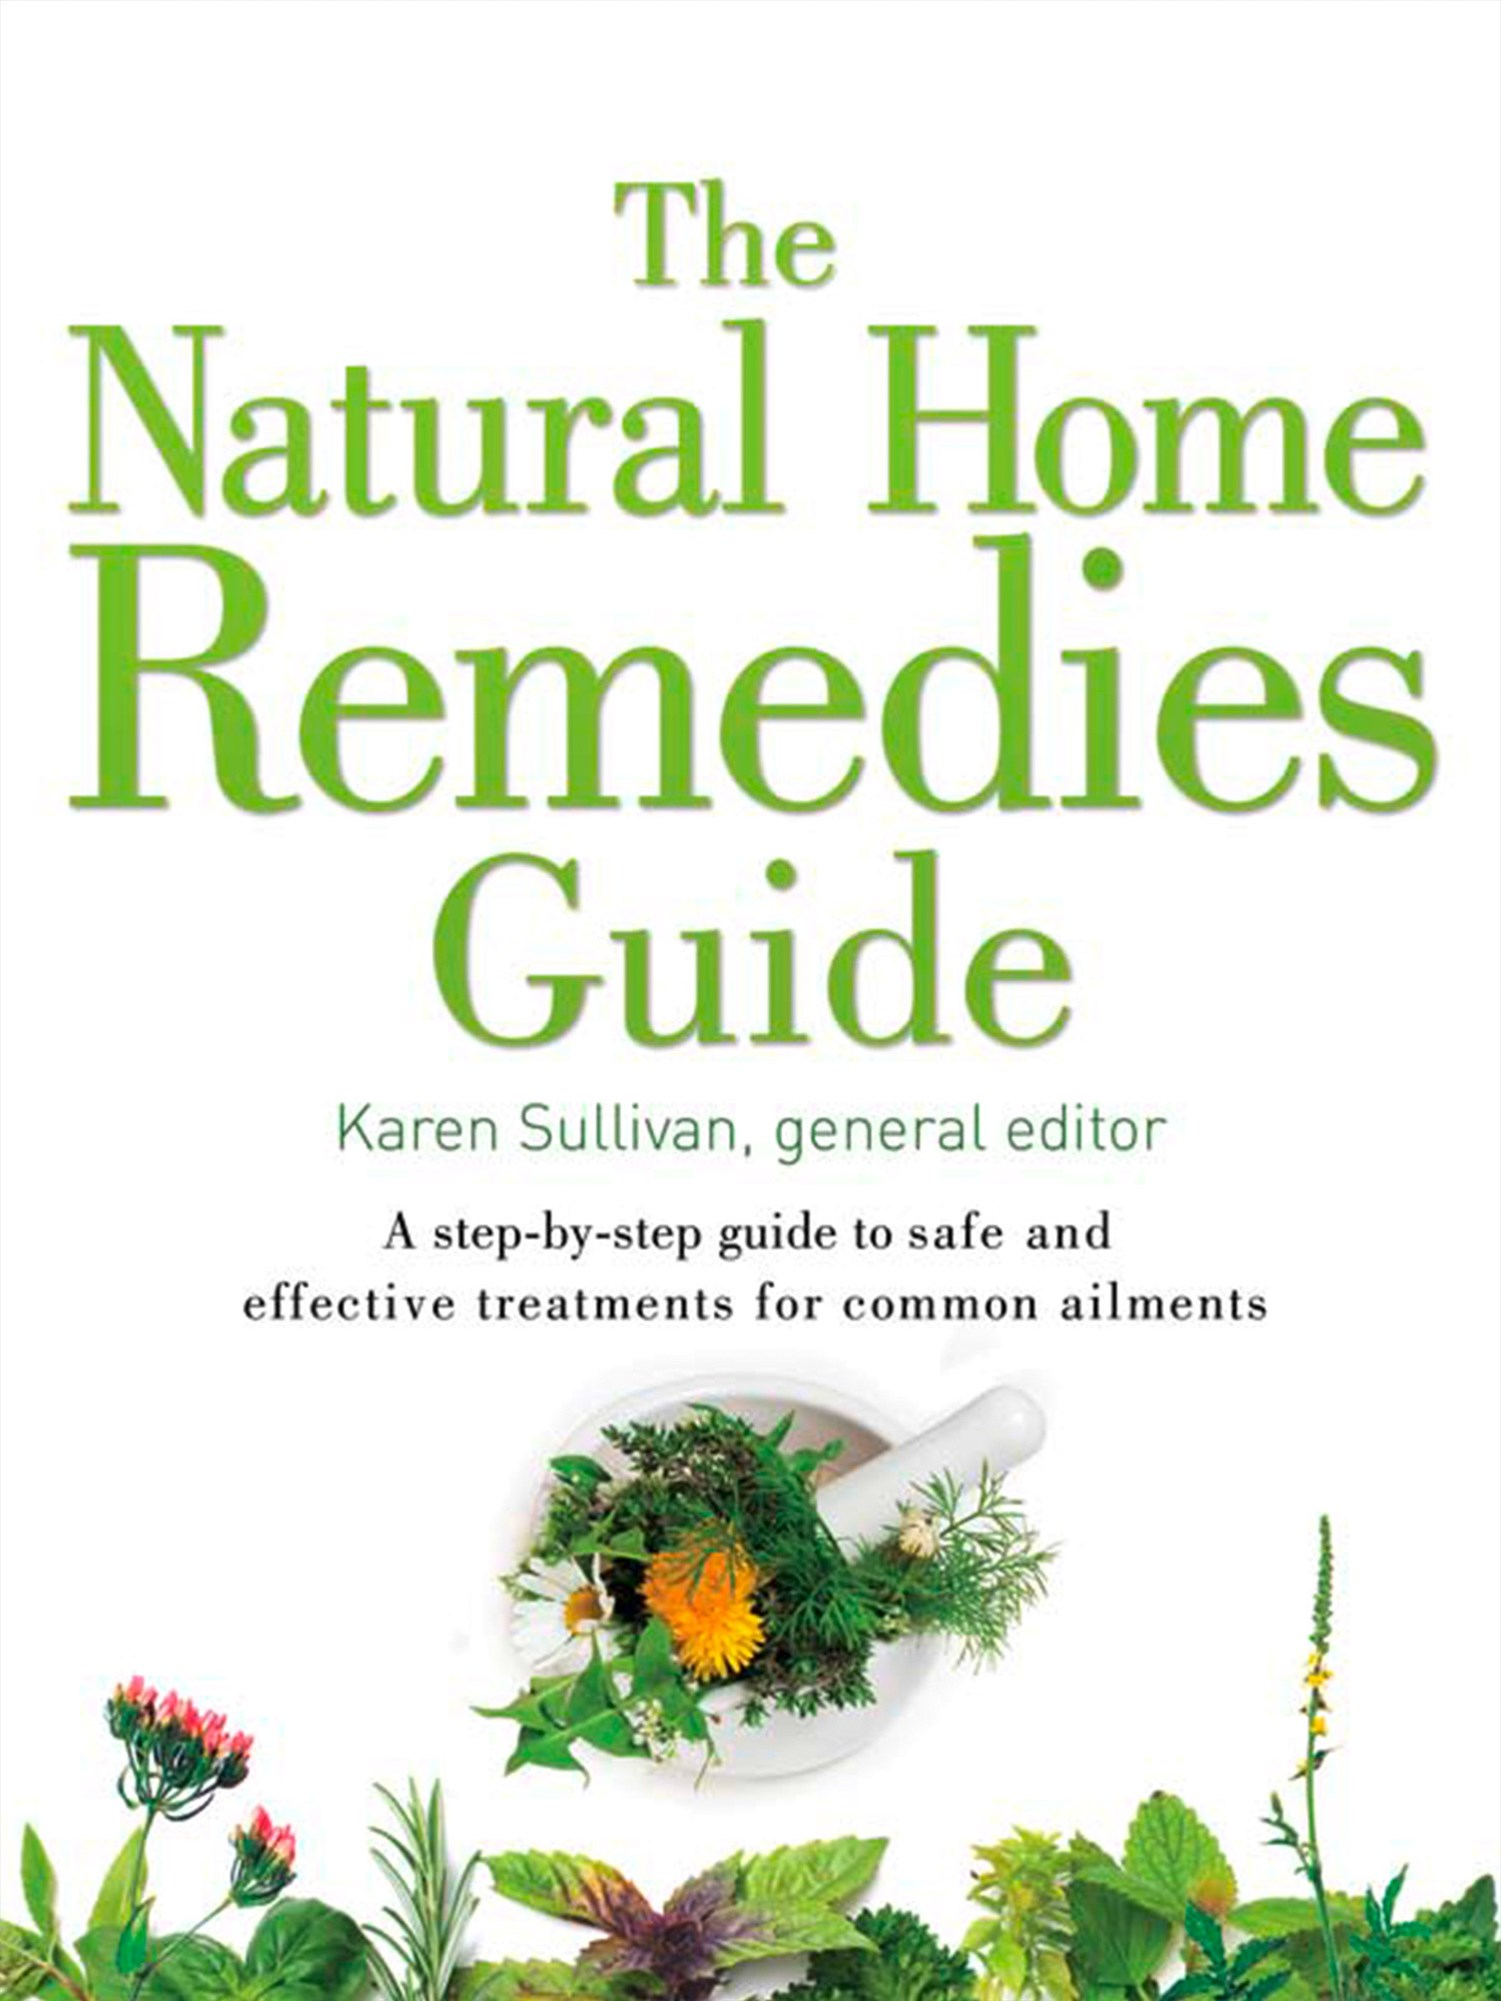 Healing Guides - The Natural Home Remedies Guide: A Step-by-step Guide To Safe And Effective Treatments For Common Ailments